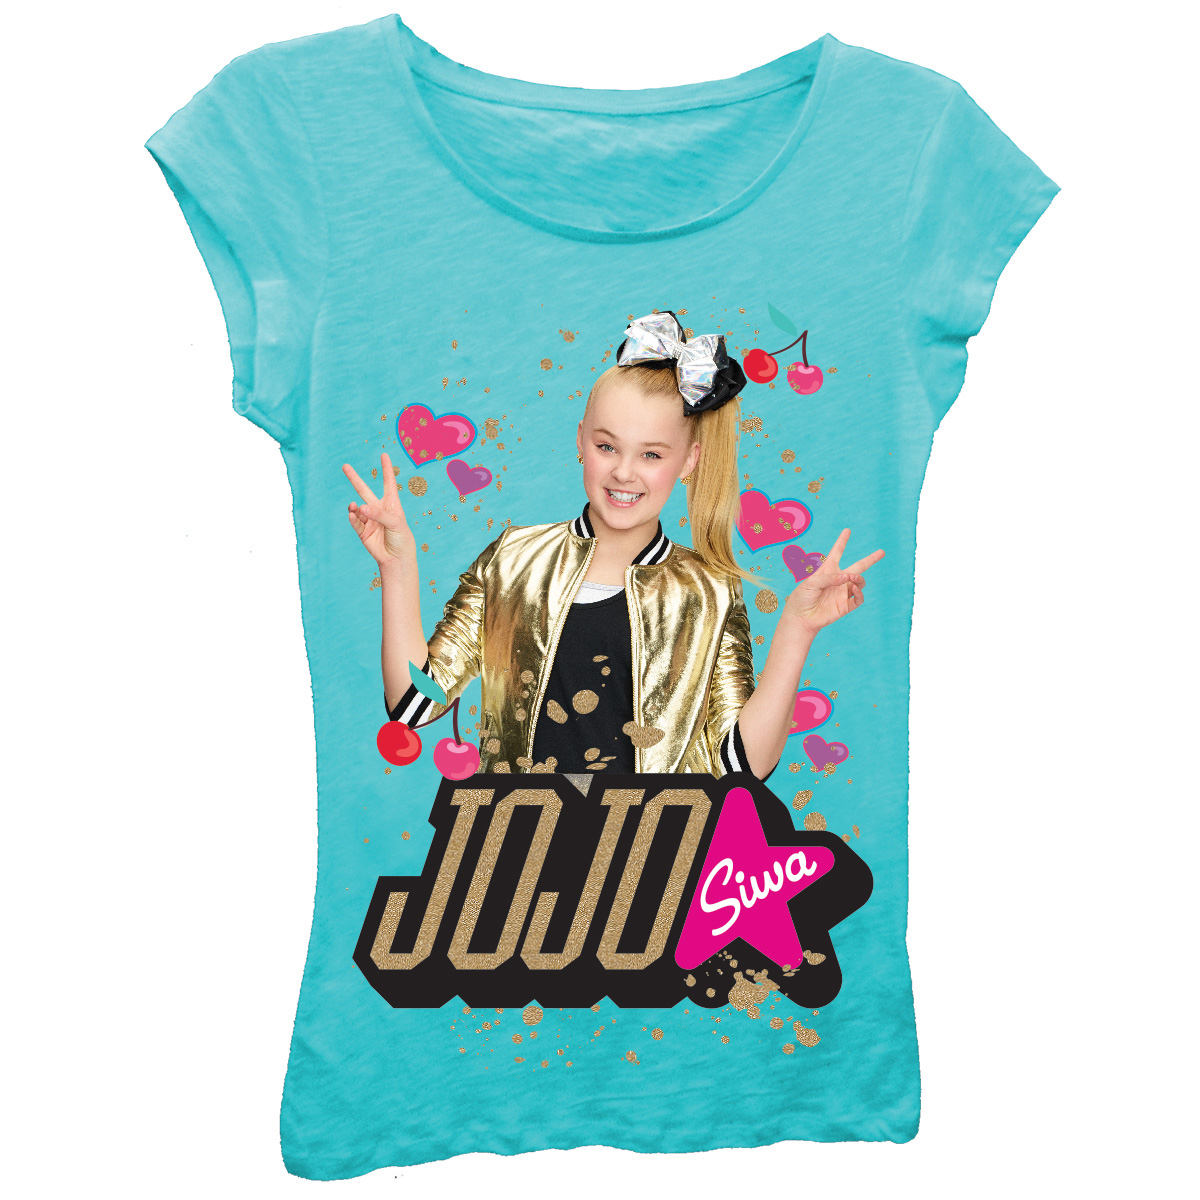 Jojo Siwa Girls' Jojo Siwa Short Sleeve Graphic T-shirt With Gold Glitter